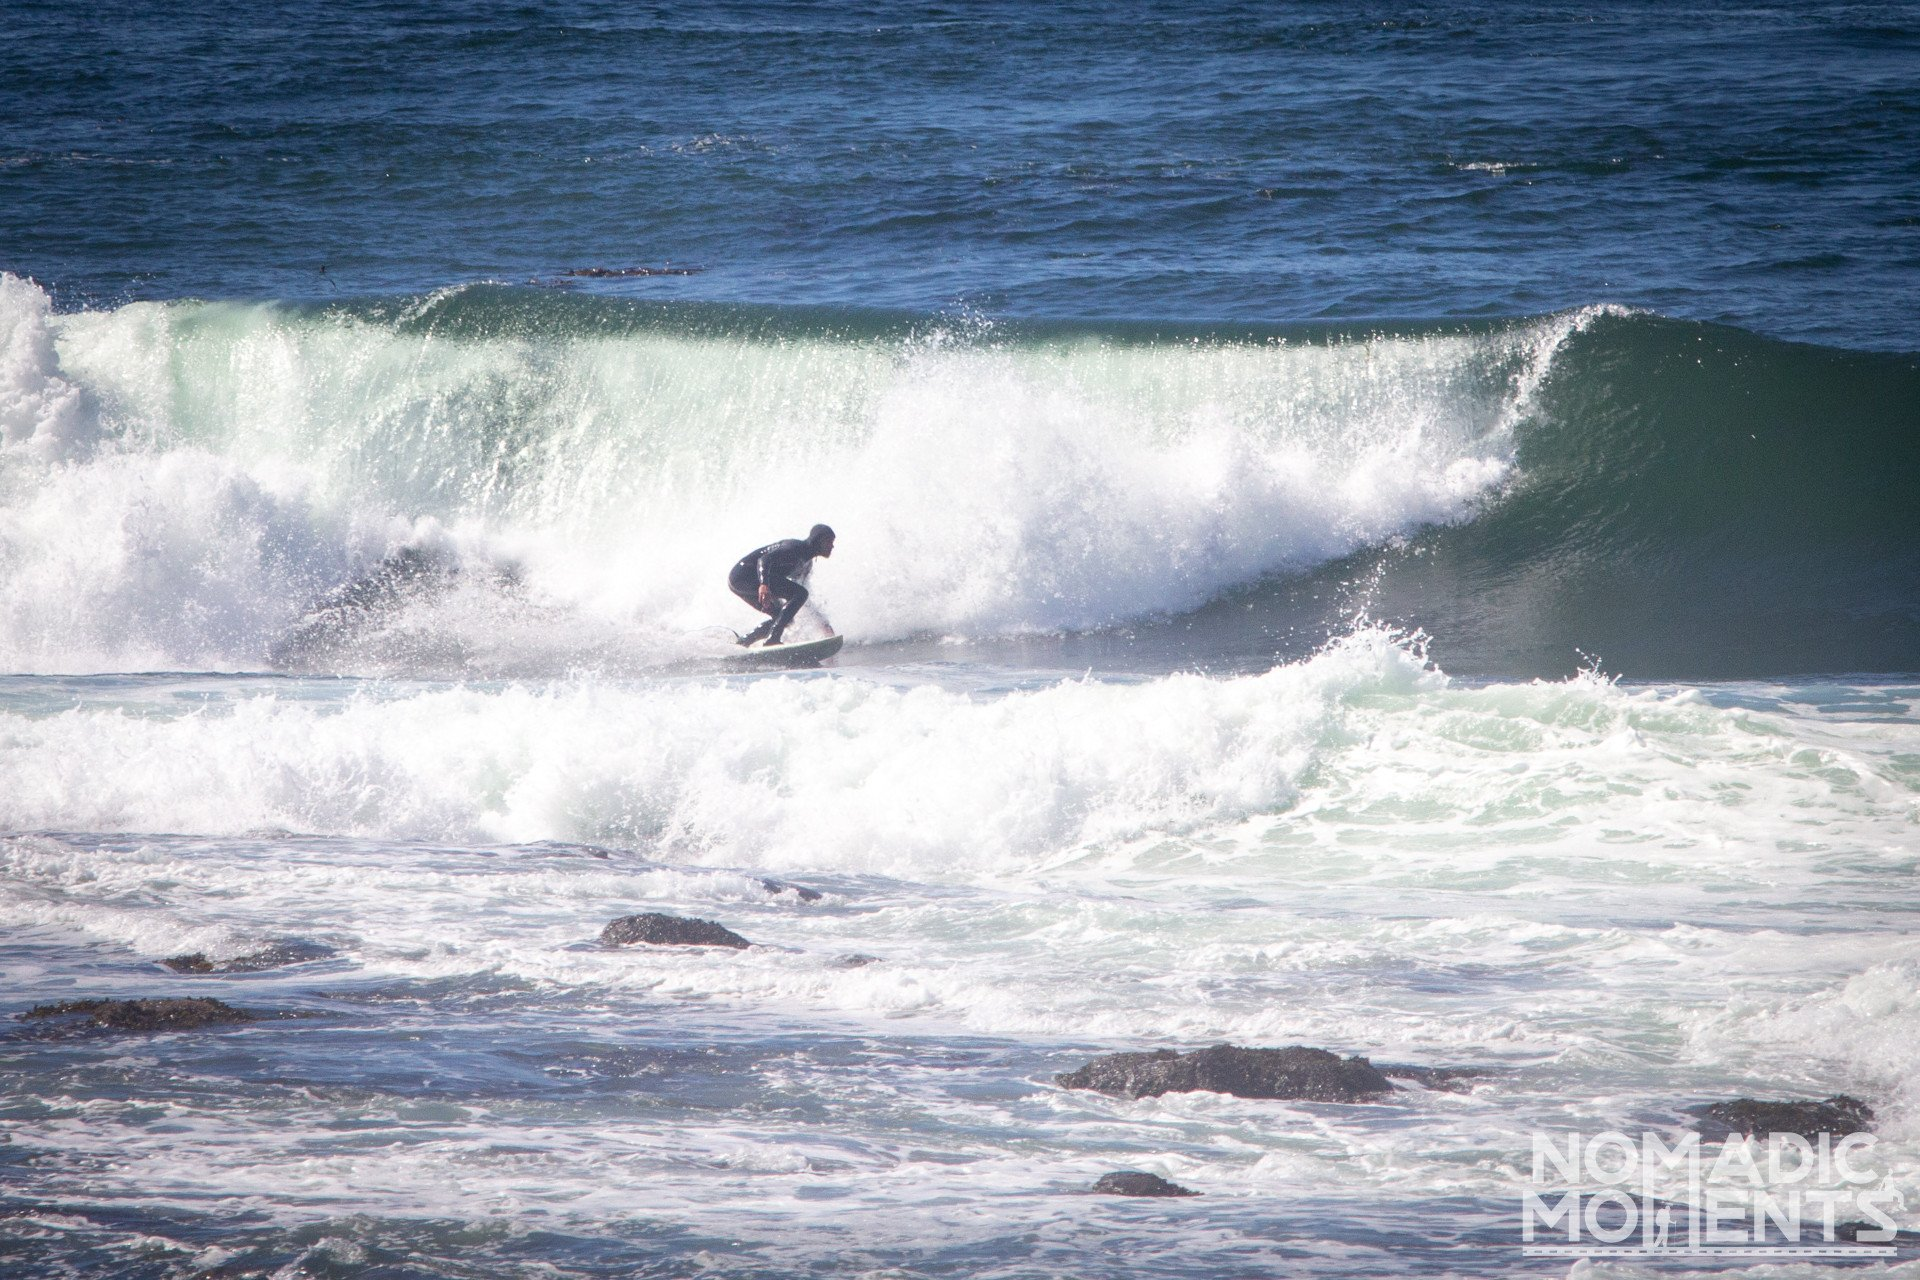 Surfer - Olympic National Park Guide